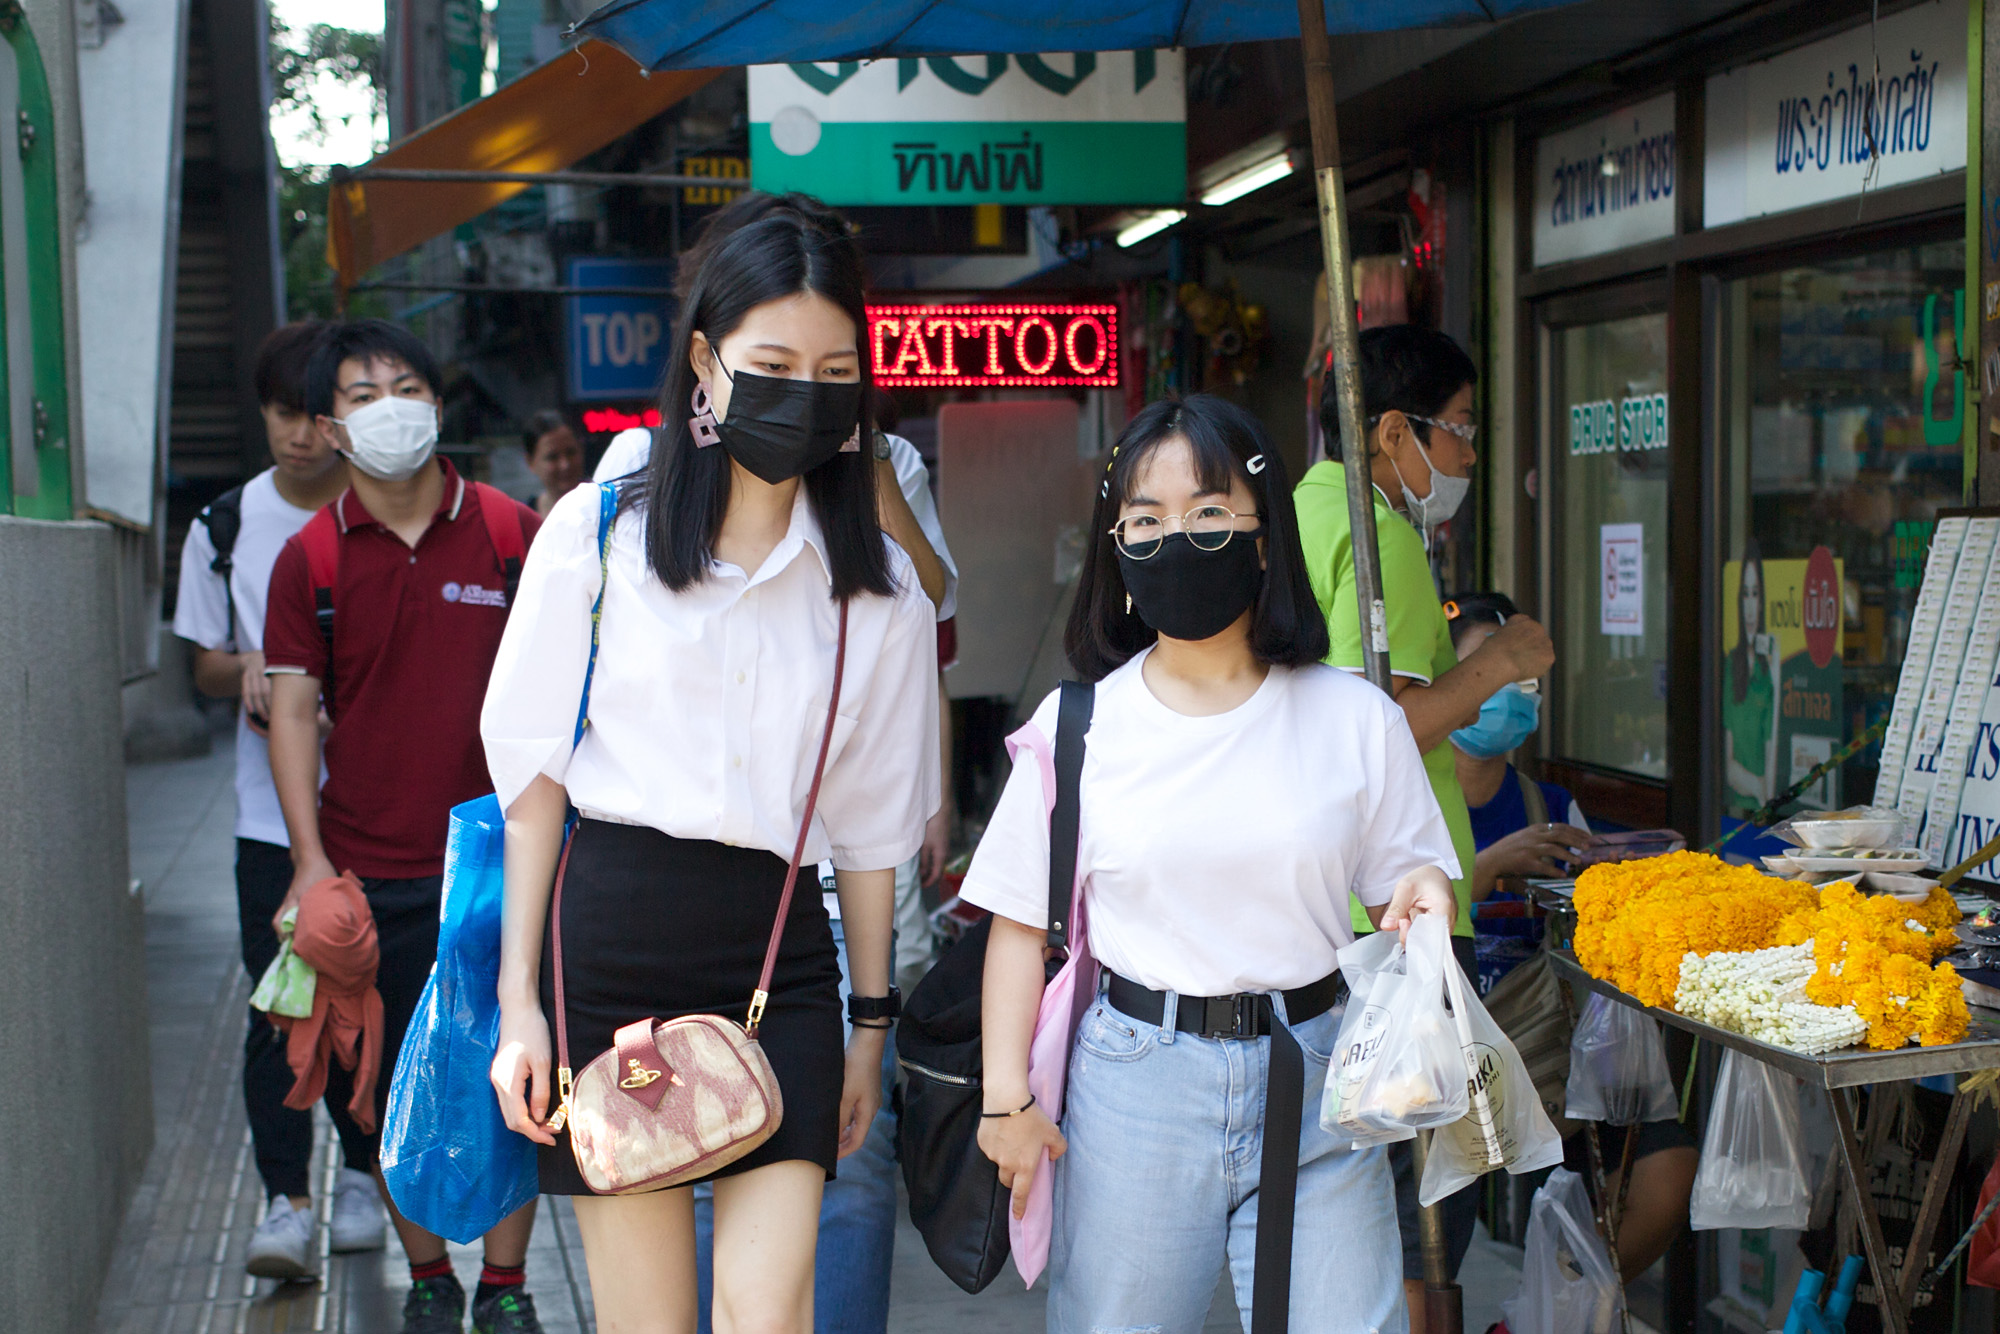 several people wearing masks